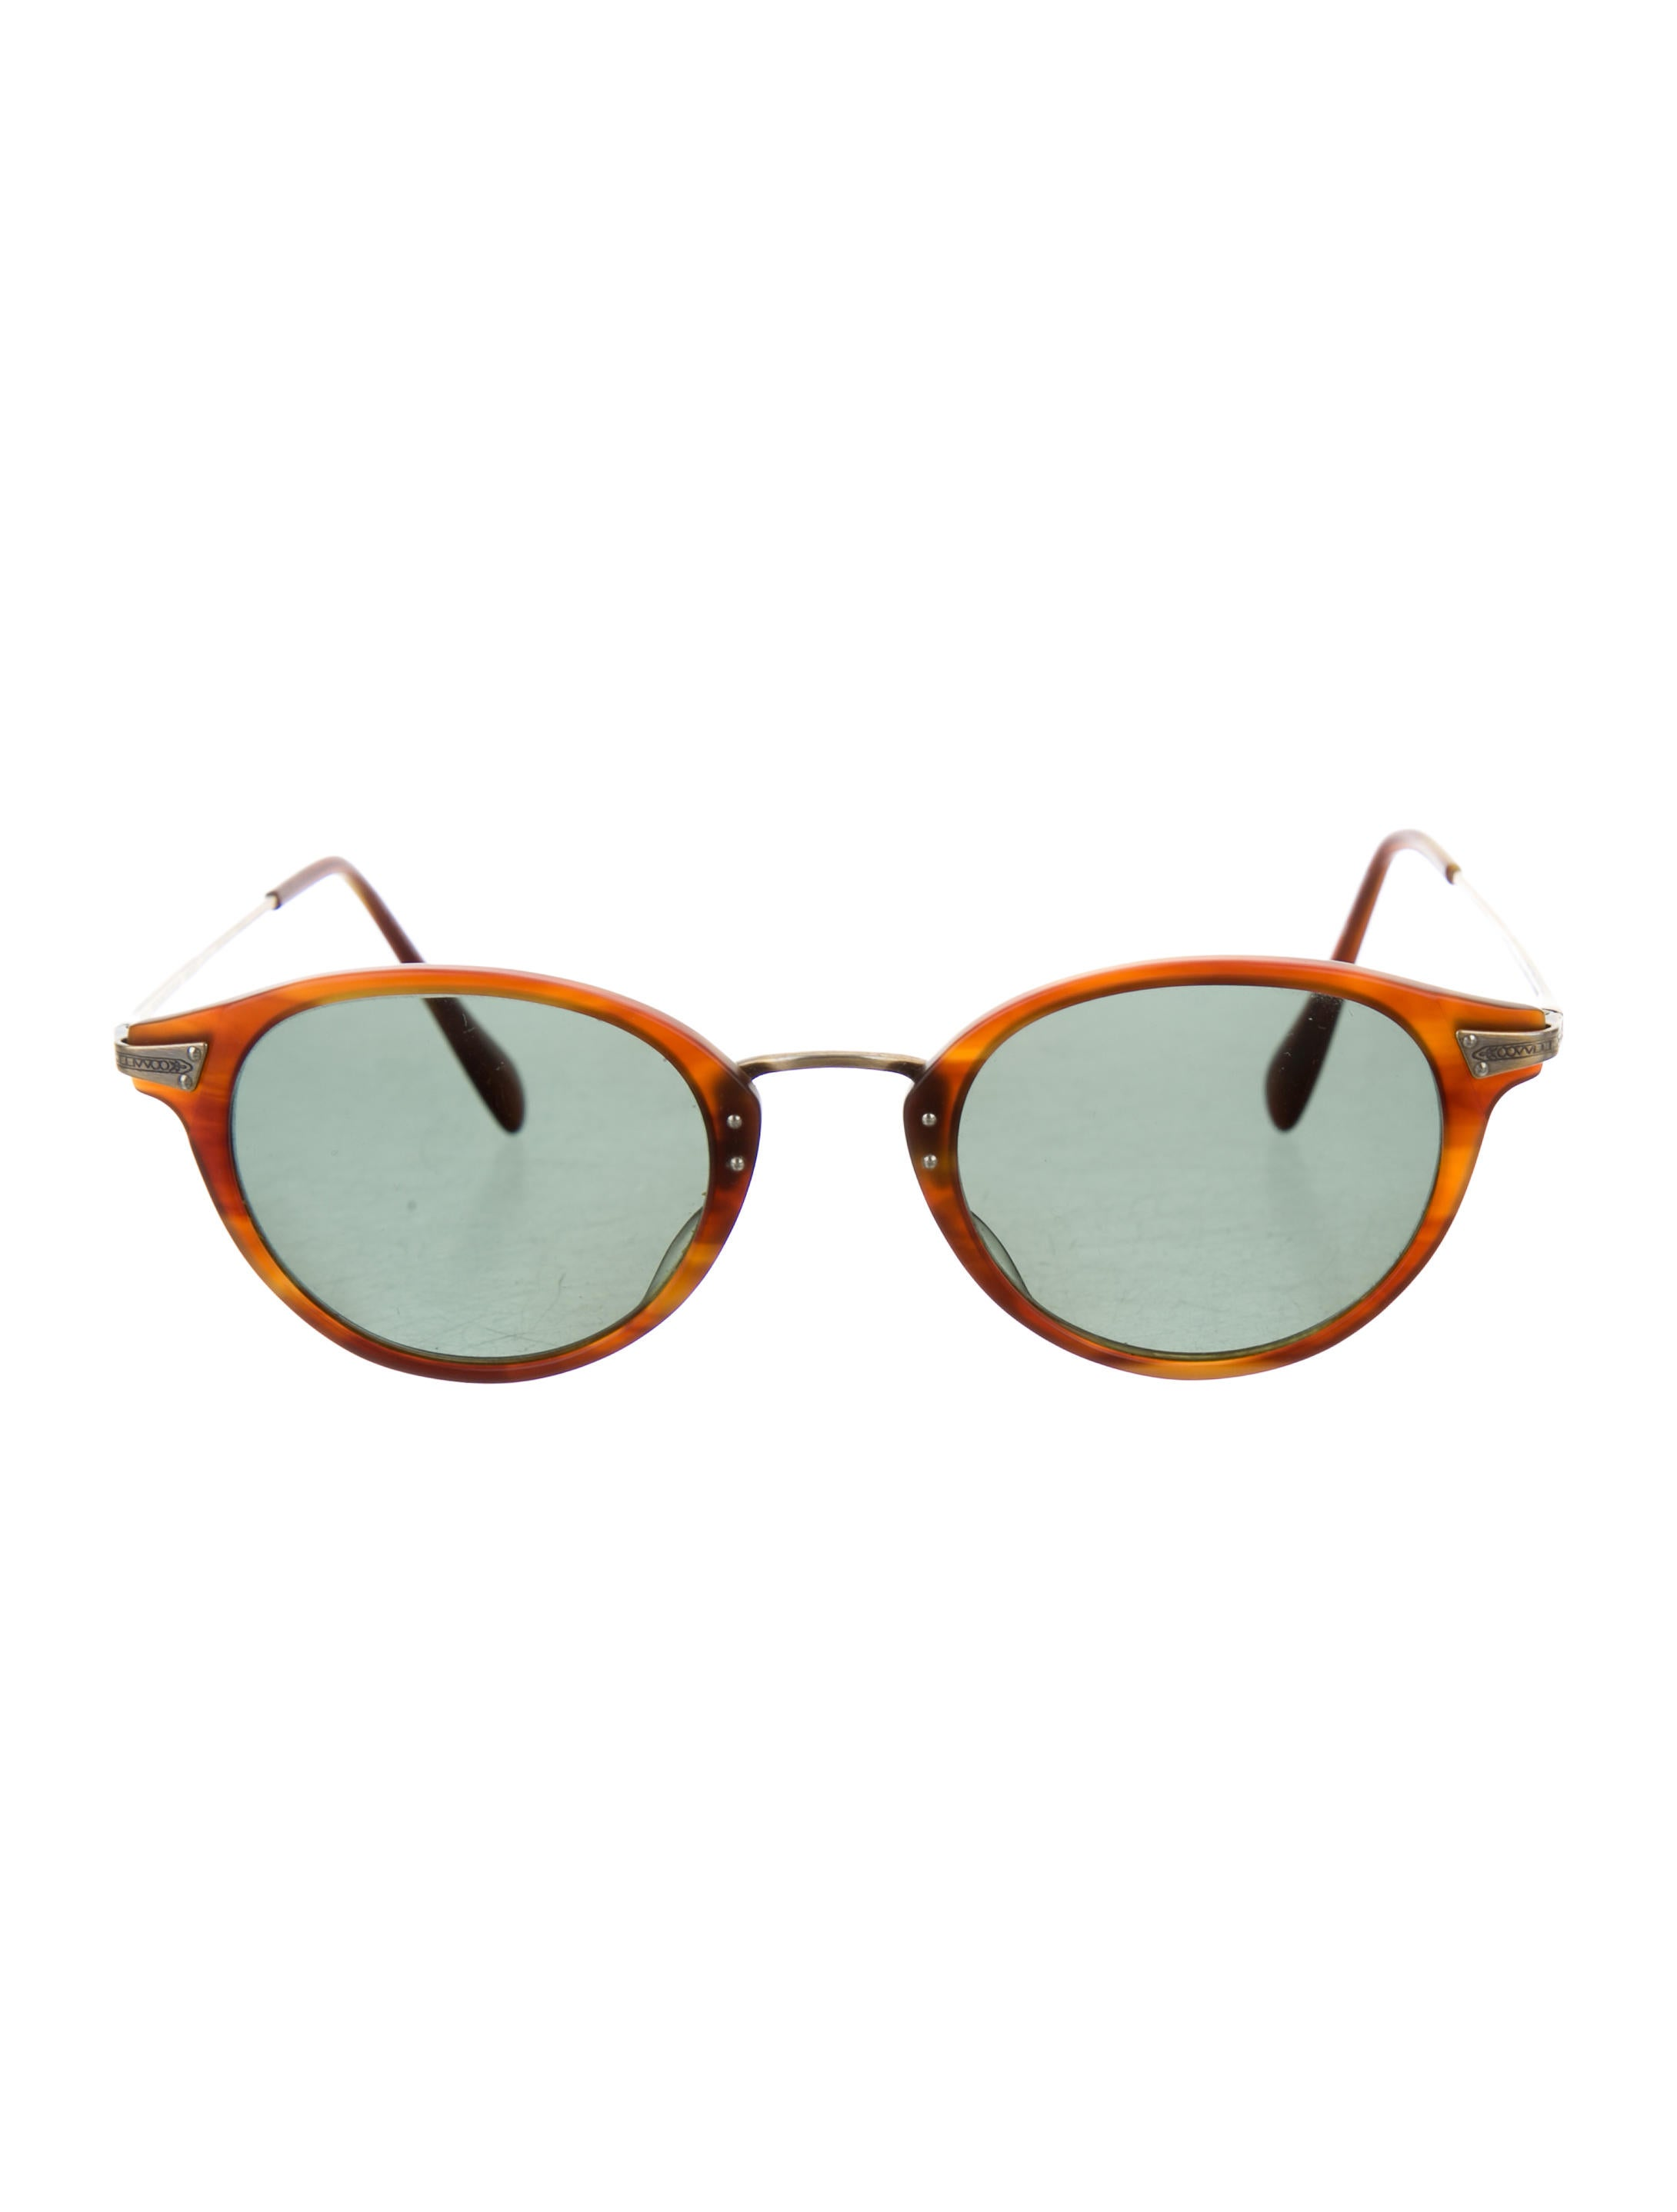 5406064ee101c Oliver Peoples Wylie Circular Sunglasses - Accessories - WOP22730 ...